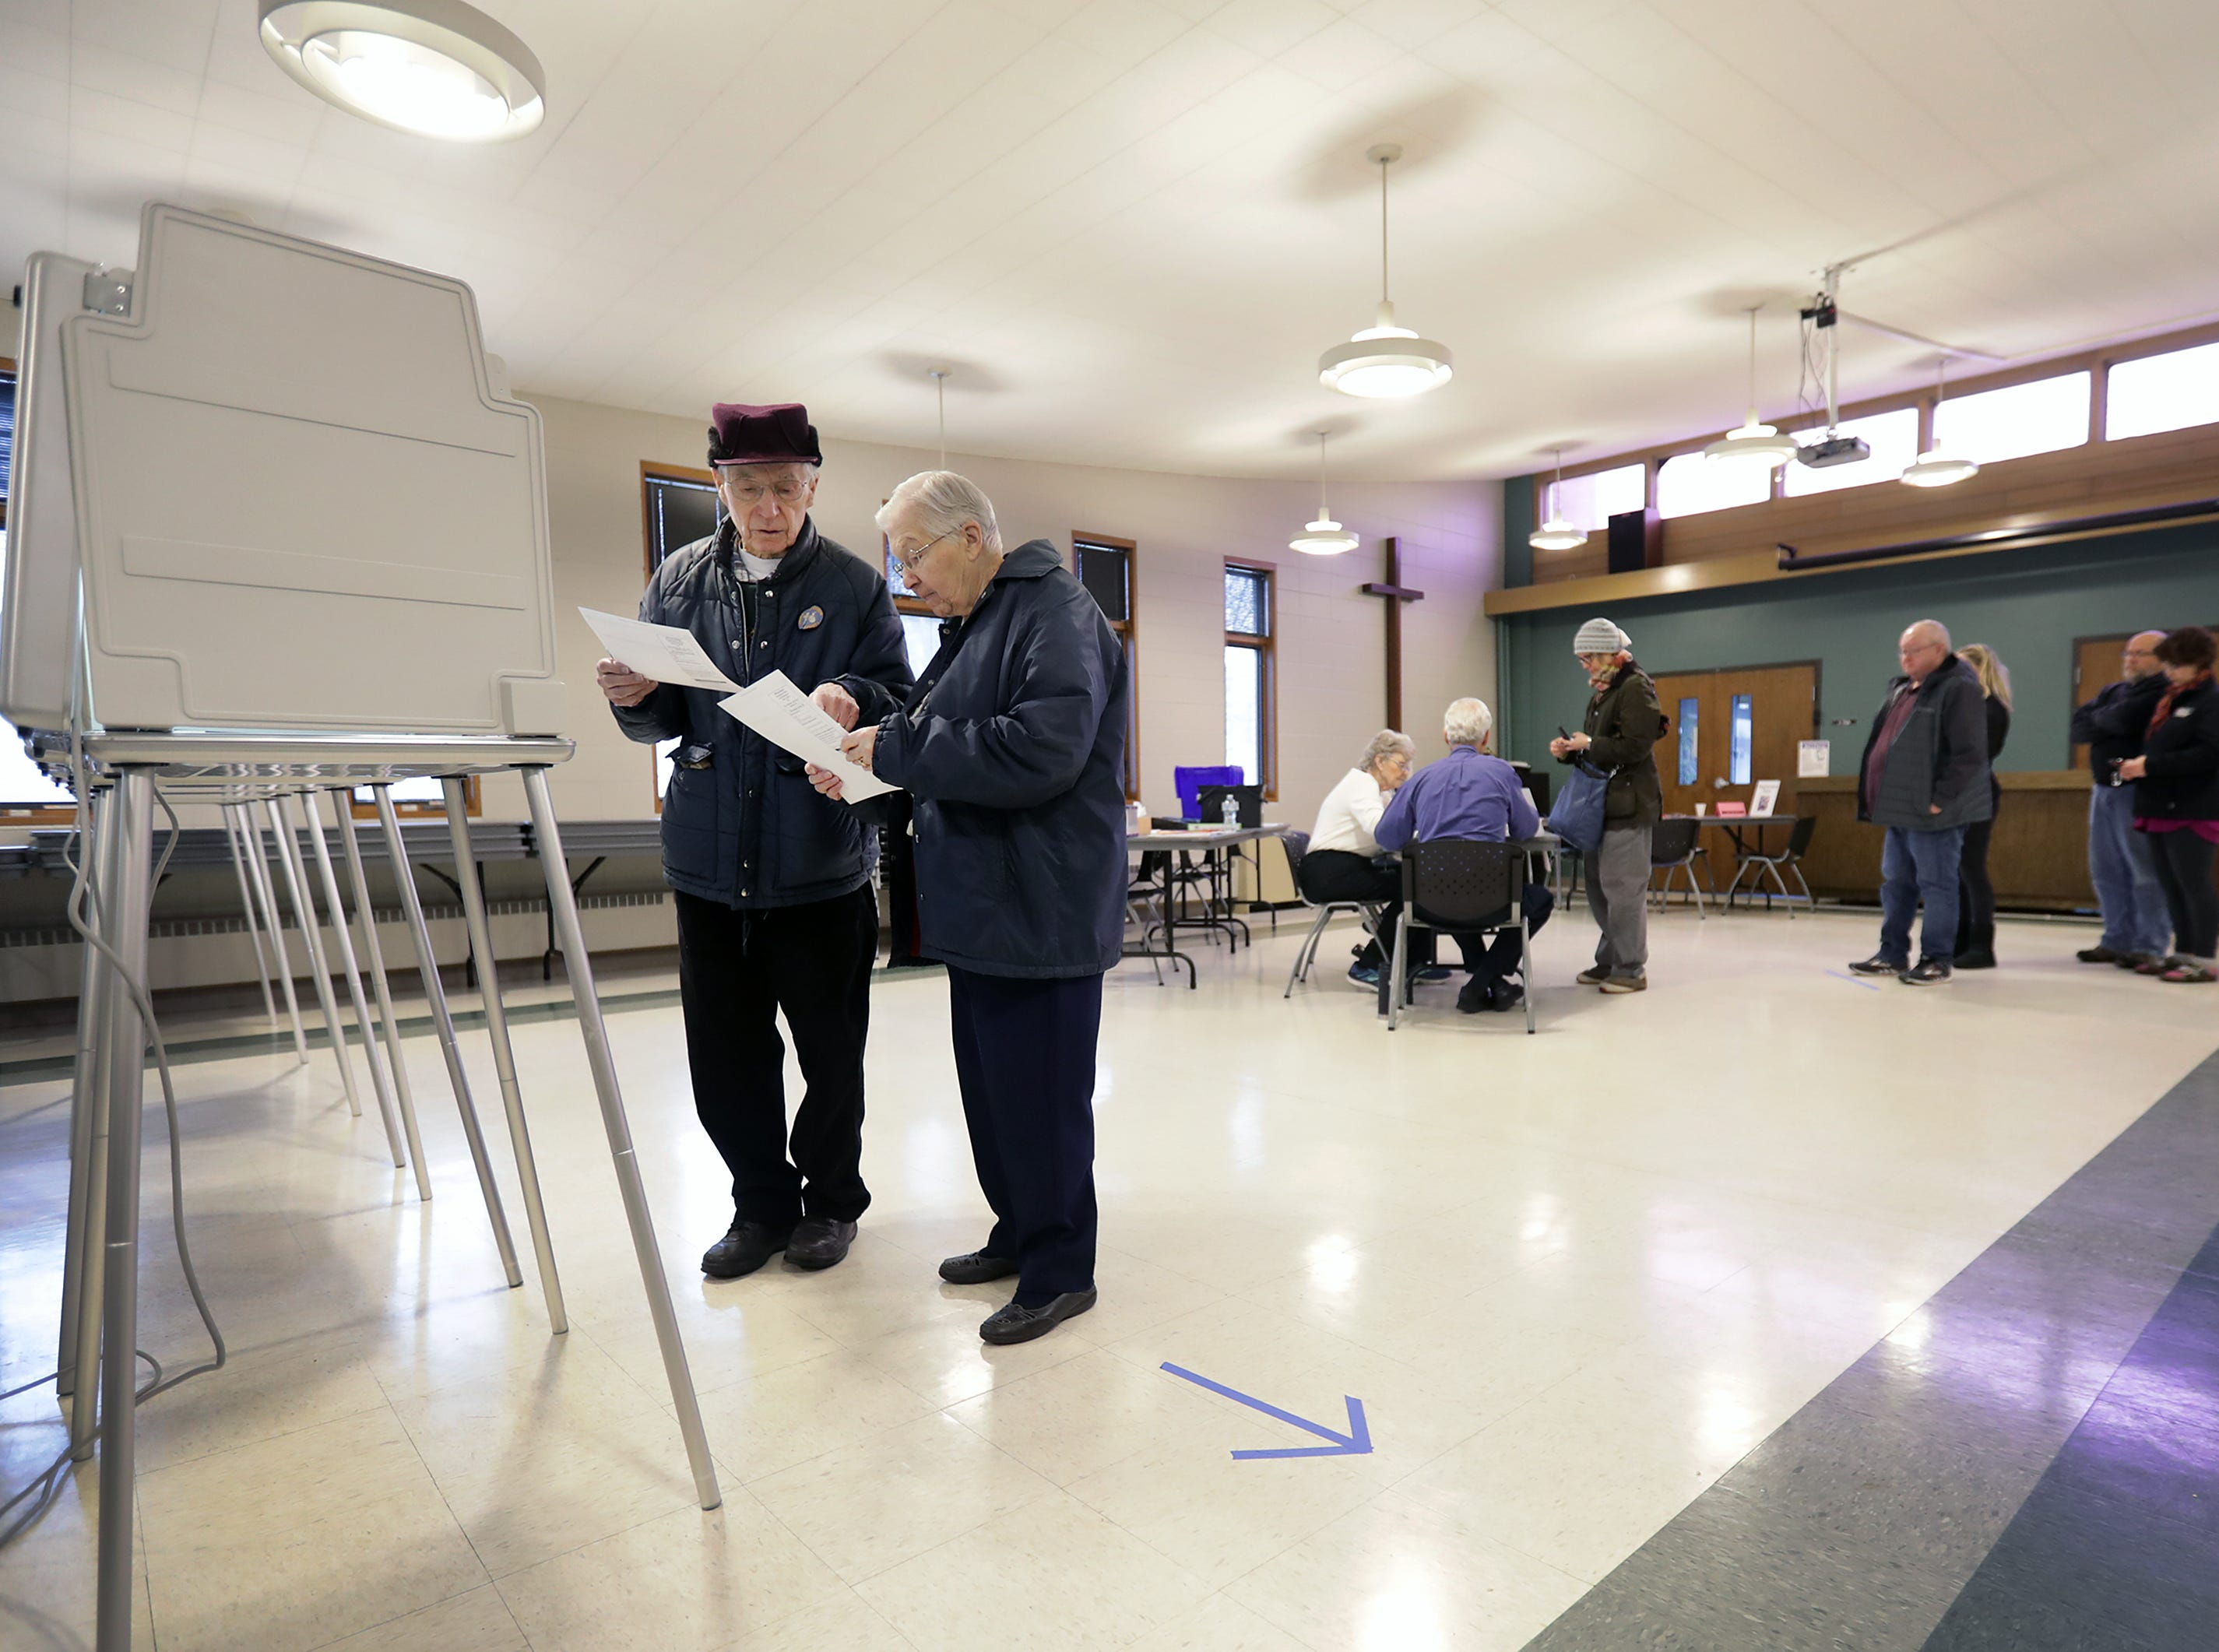 Jim and Dorothy Francart look over their ballots before filling them out as voters head to the polls at Peace Lutheran Church on Tuesday, April 2, 2019, in Neenah, Wis.Wm. Glasheen/USA TODAY NETWORK-Wisconsin.